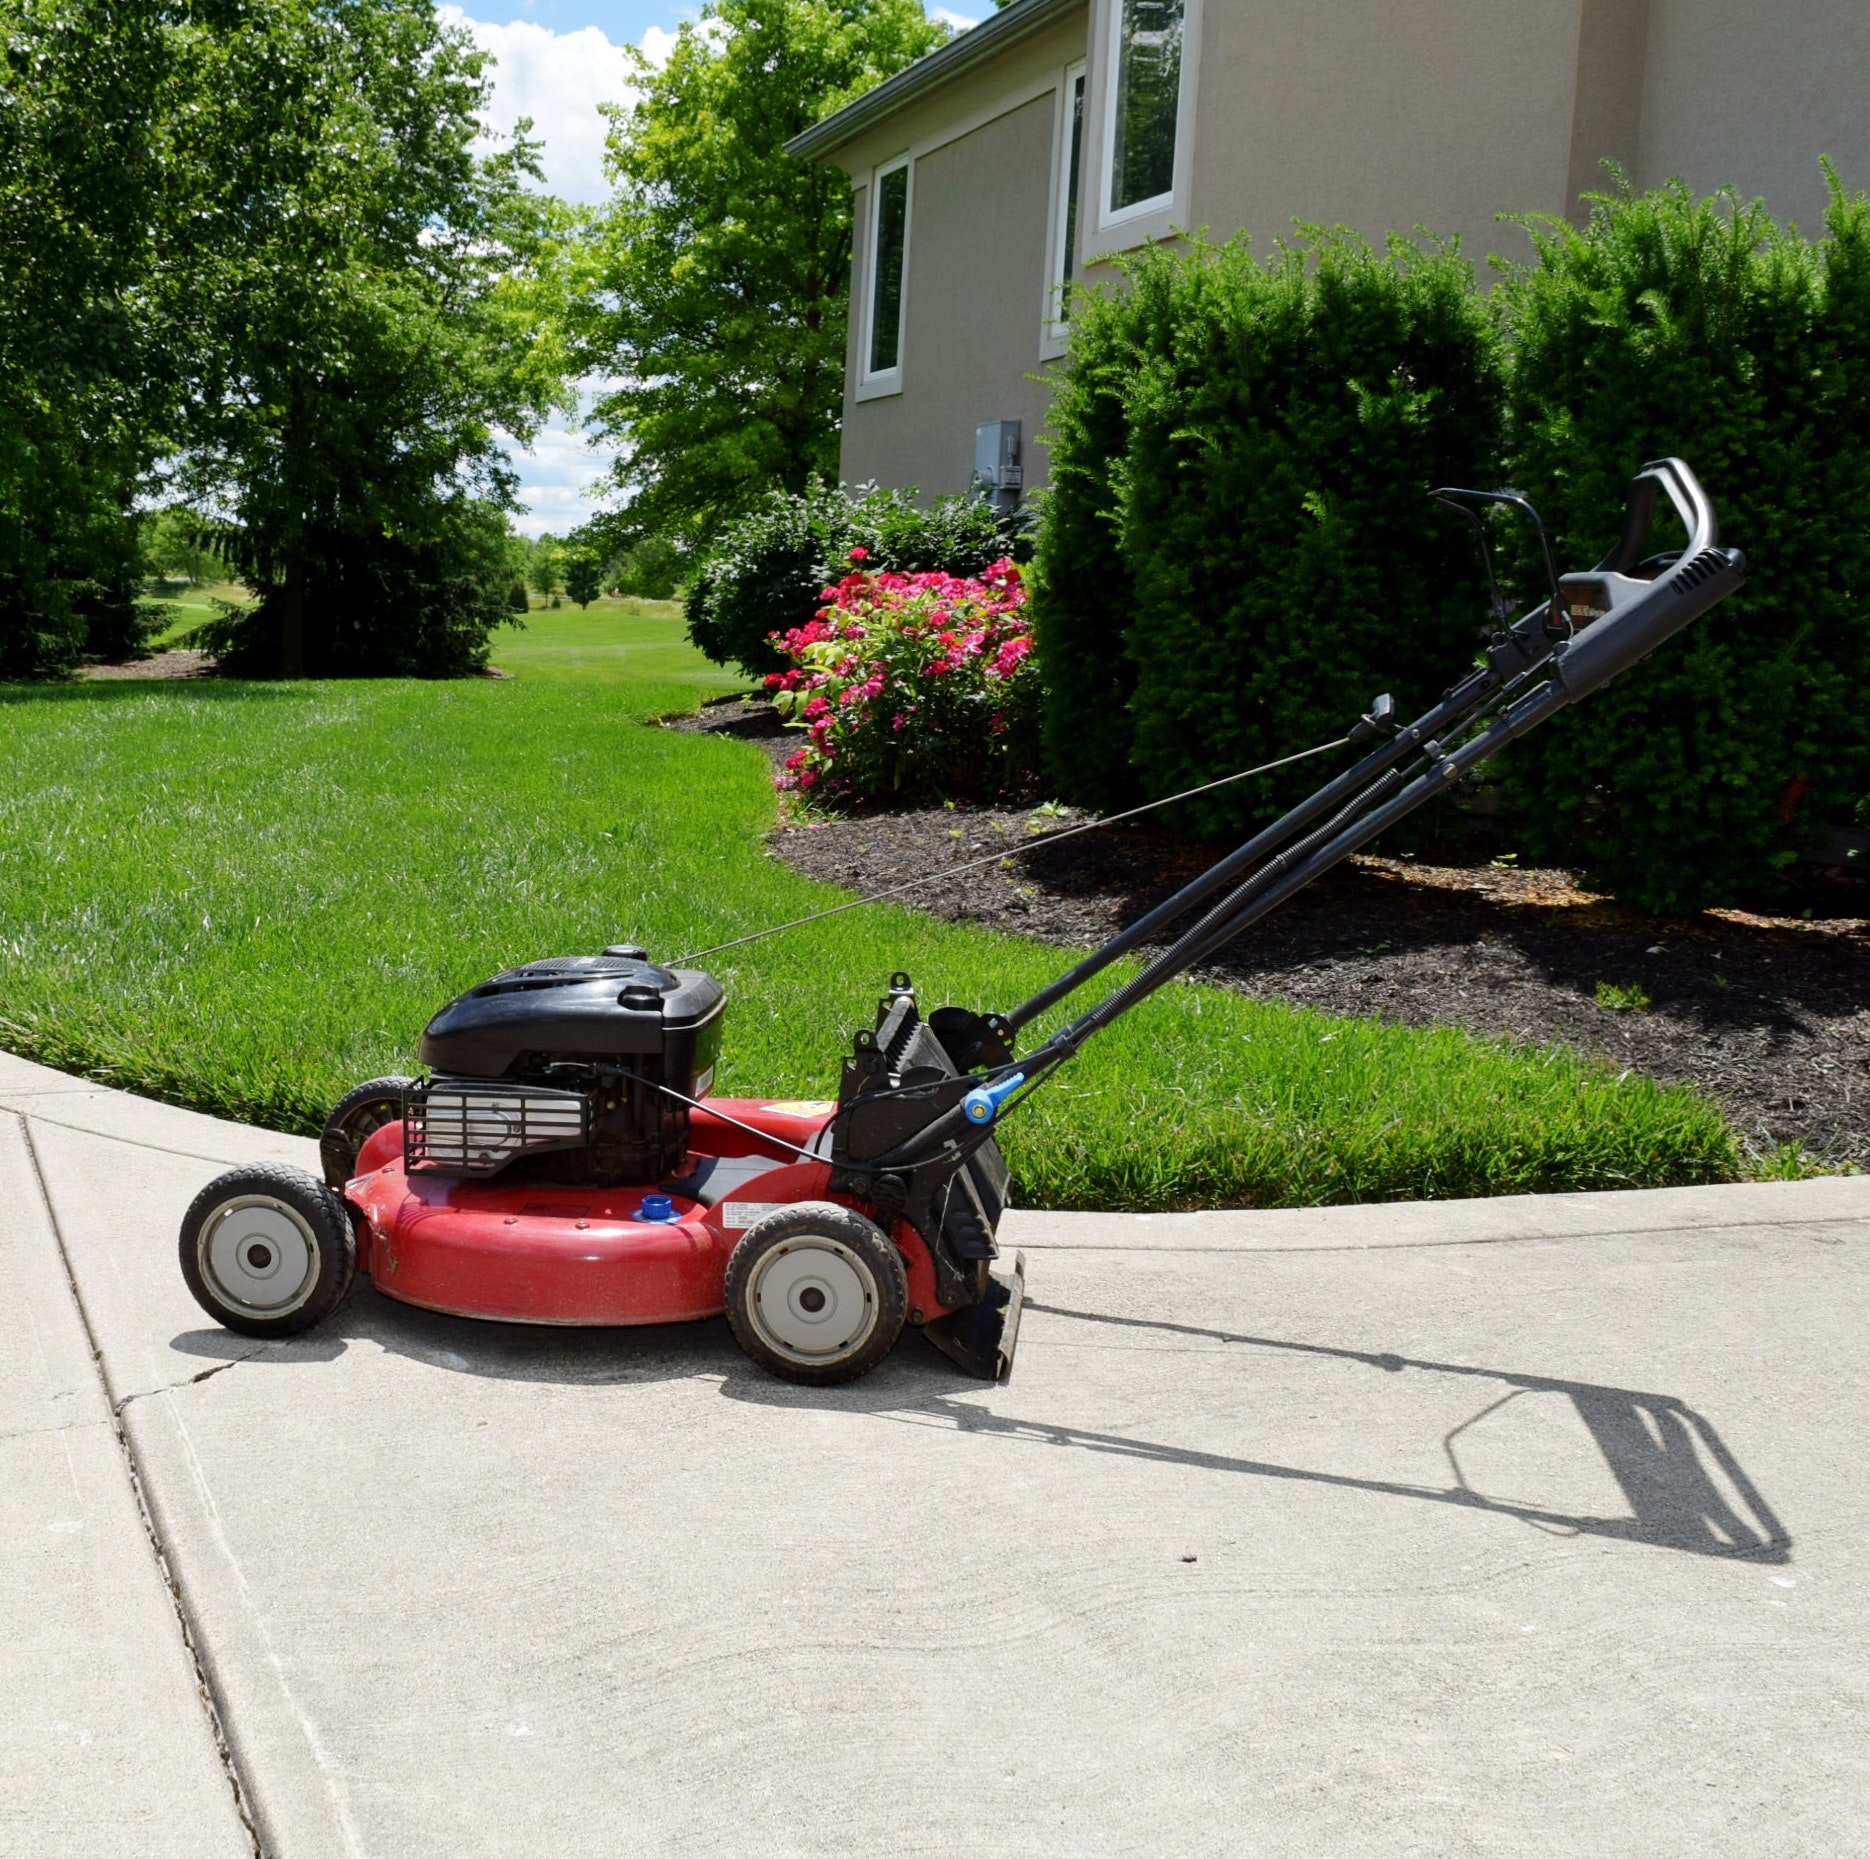 Craftsman 6 75 Hp Ready Start 22 Inch Cut Gas Lawn Mower